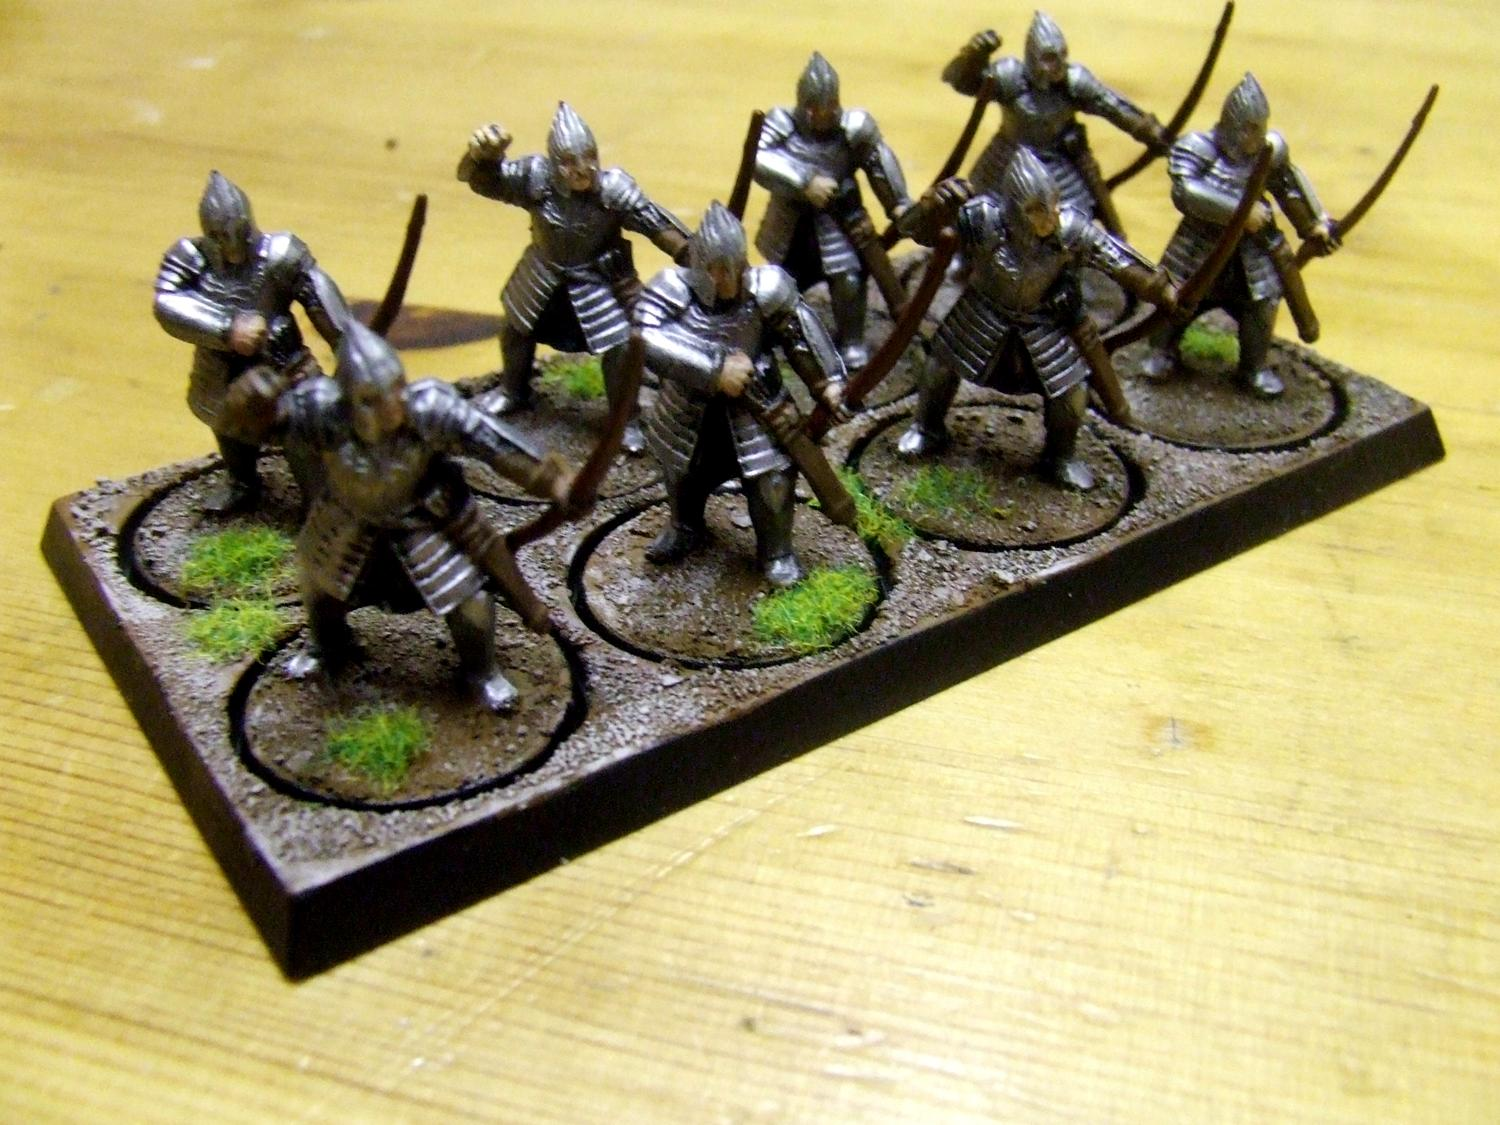 Archers, Gondor, Lord Of The Rings, Minas Tirith, War Of The Ring, Warriors Of Minas Tirith